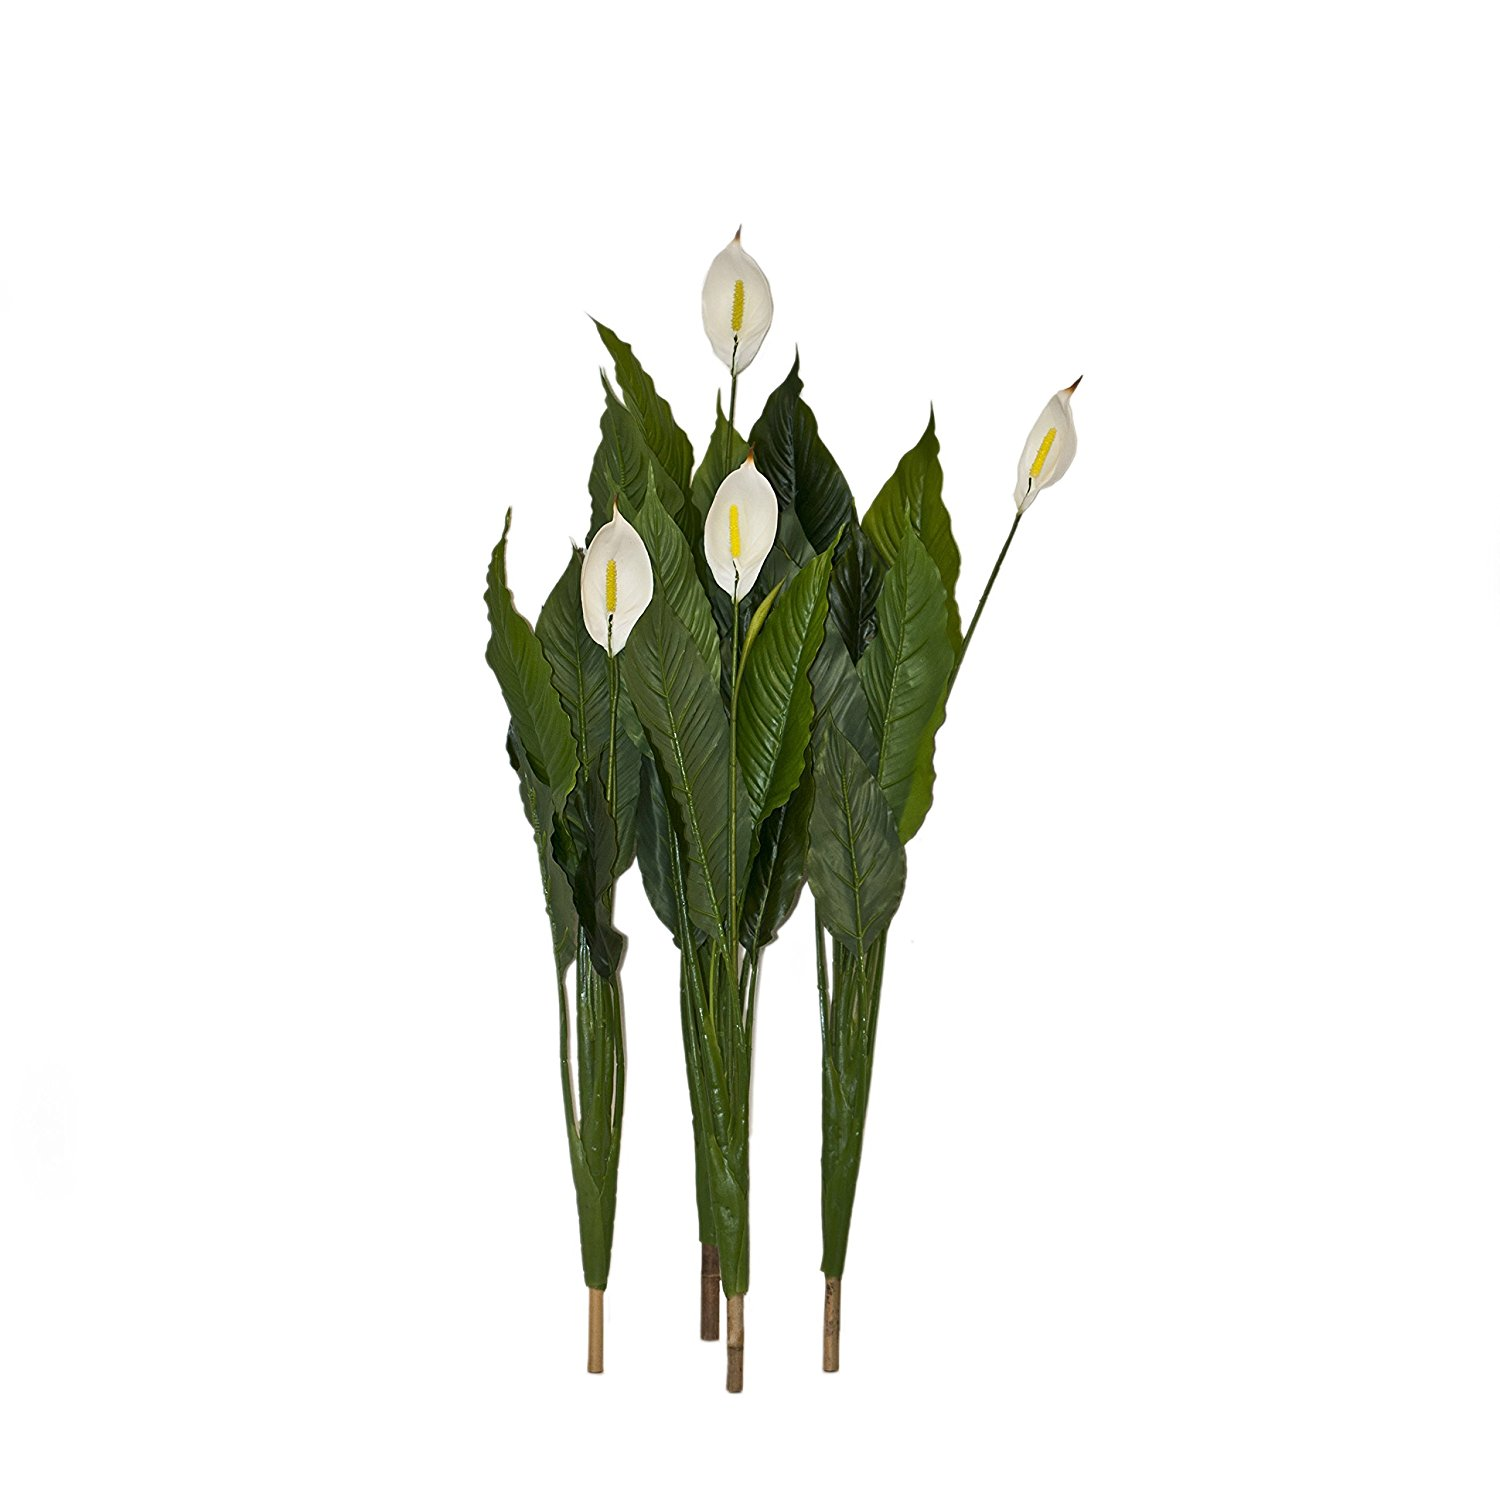 42 Inch 4 Artificial White Plant Calla Flowers for Home Decor